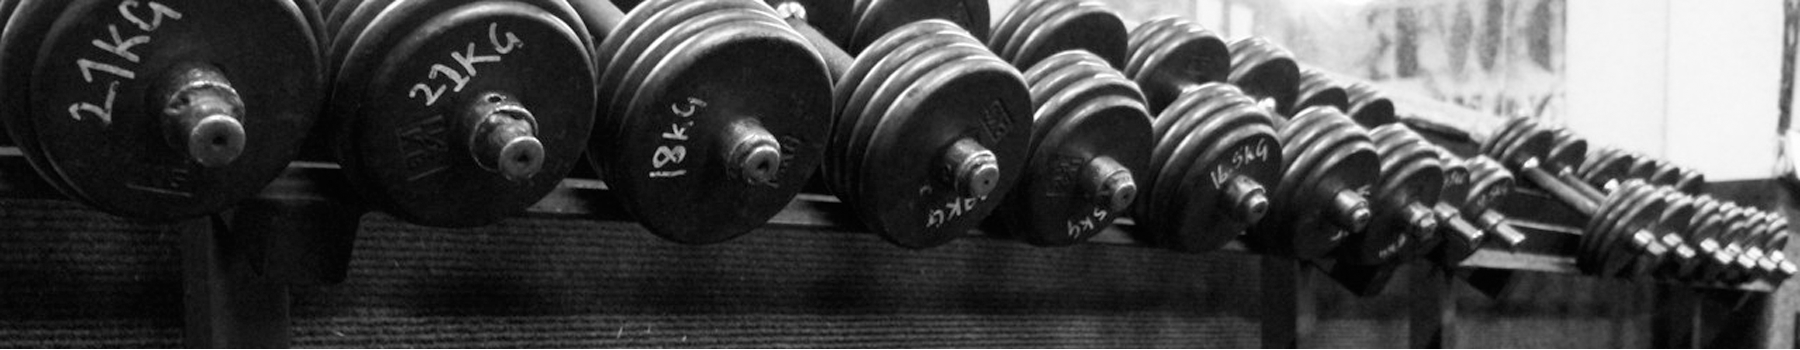 Looking for Gym Management Companies?